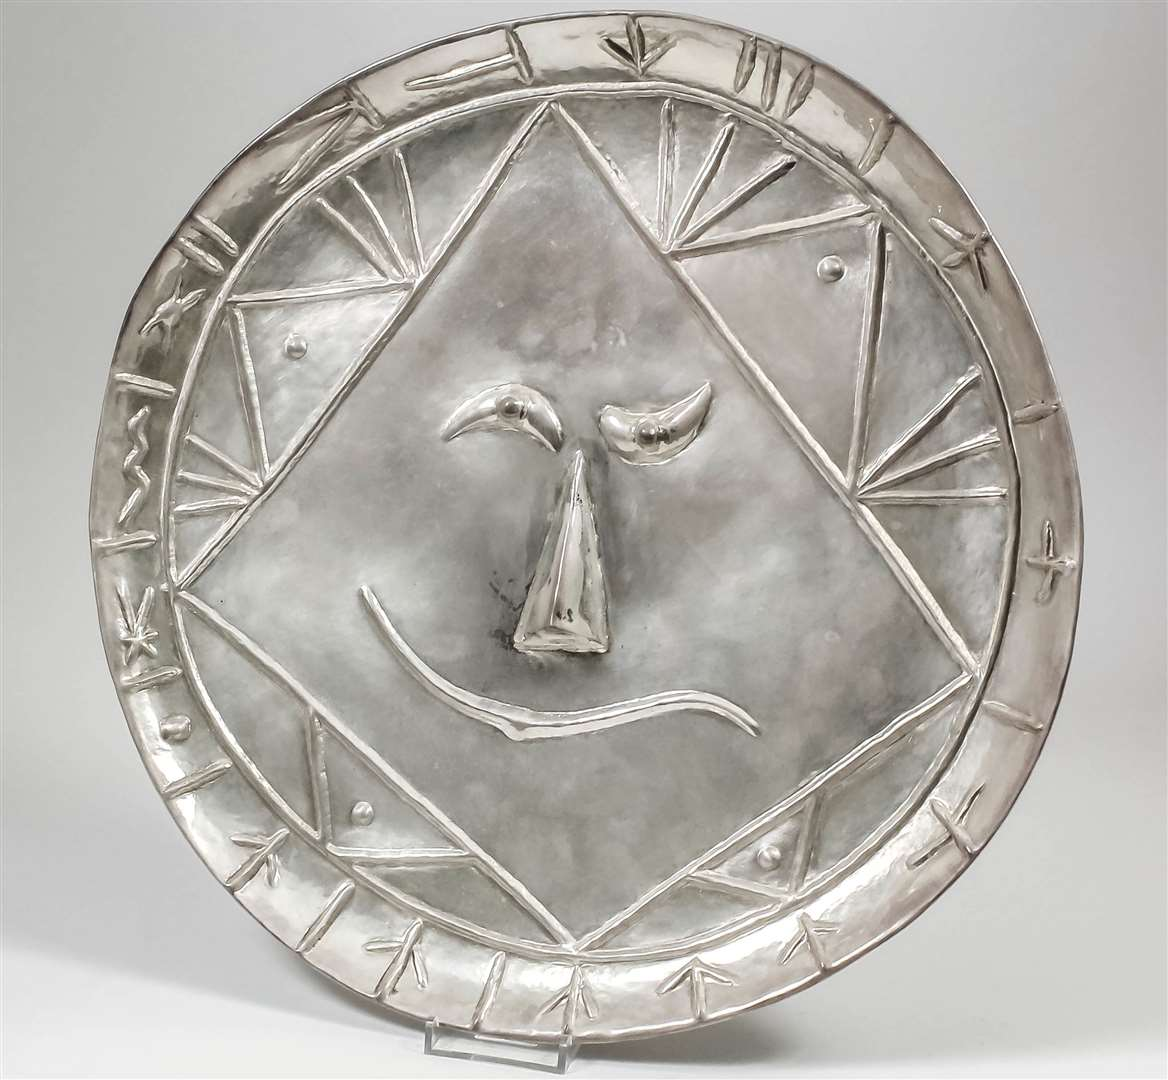 A silver repousse plate by Pablo Picasso sold for £28,000